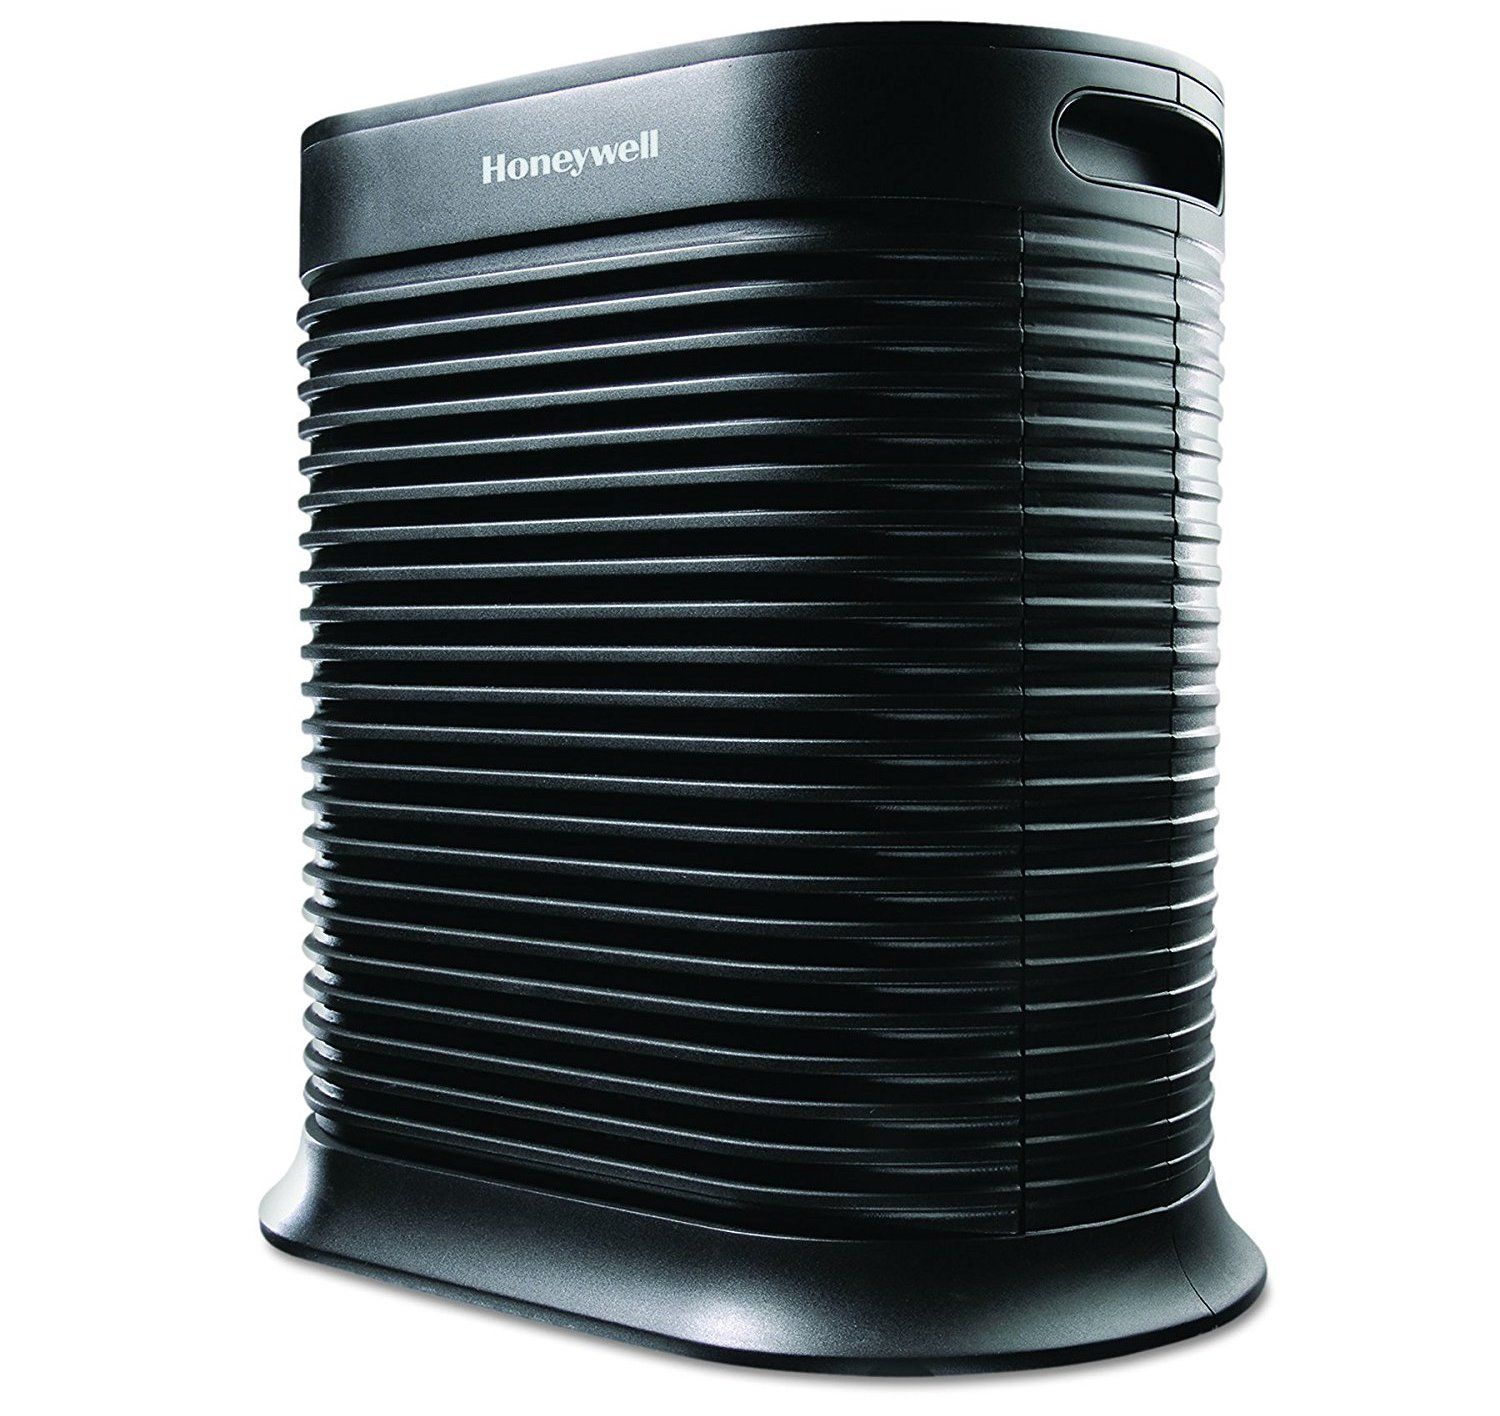 Top 5 Best Air Purifier Reviews For Home Use With True